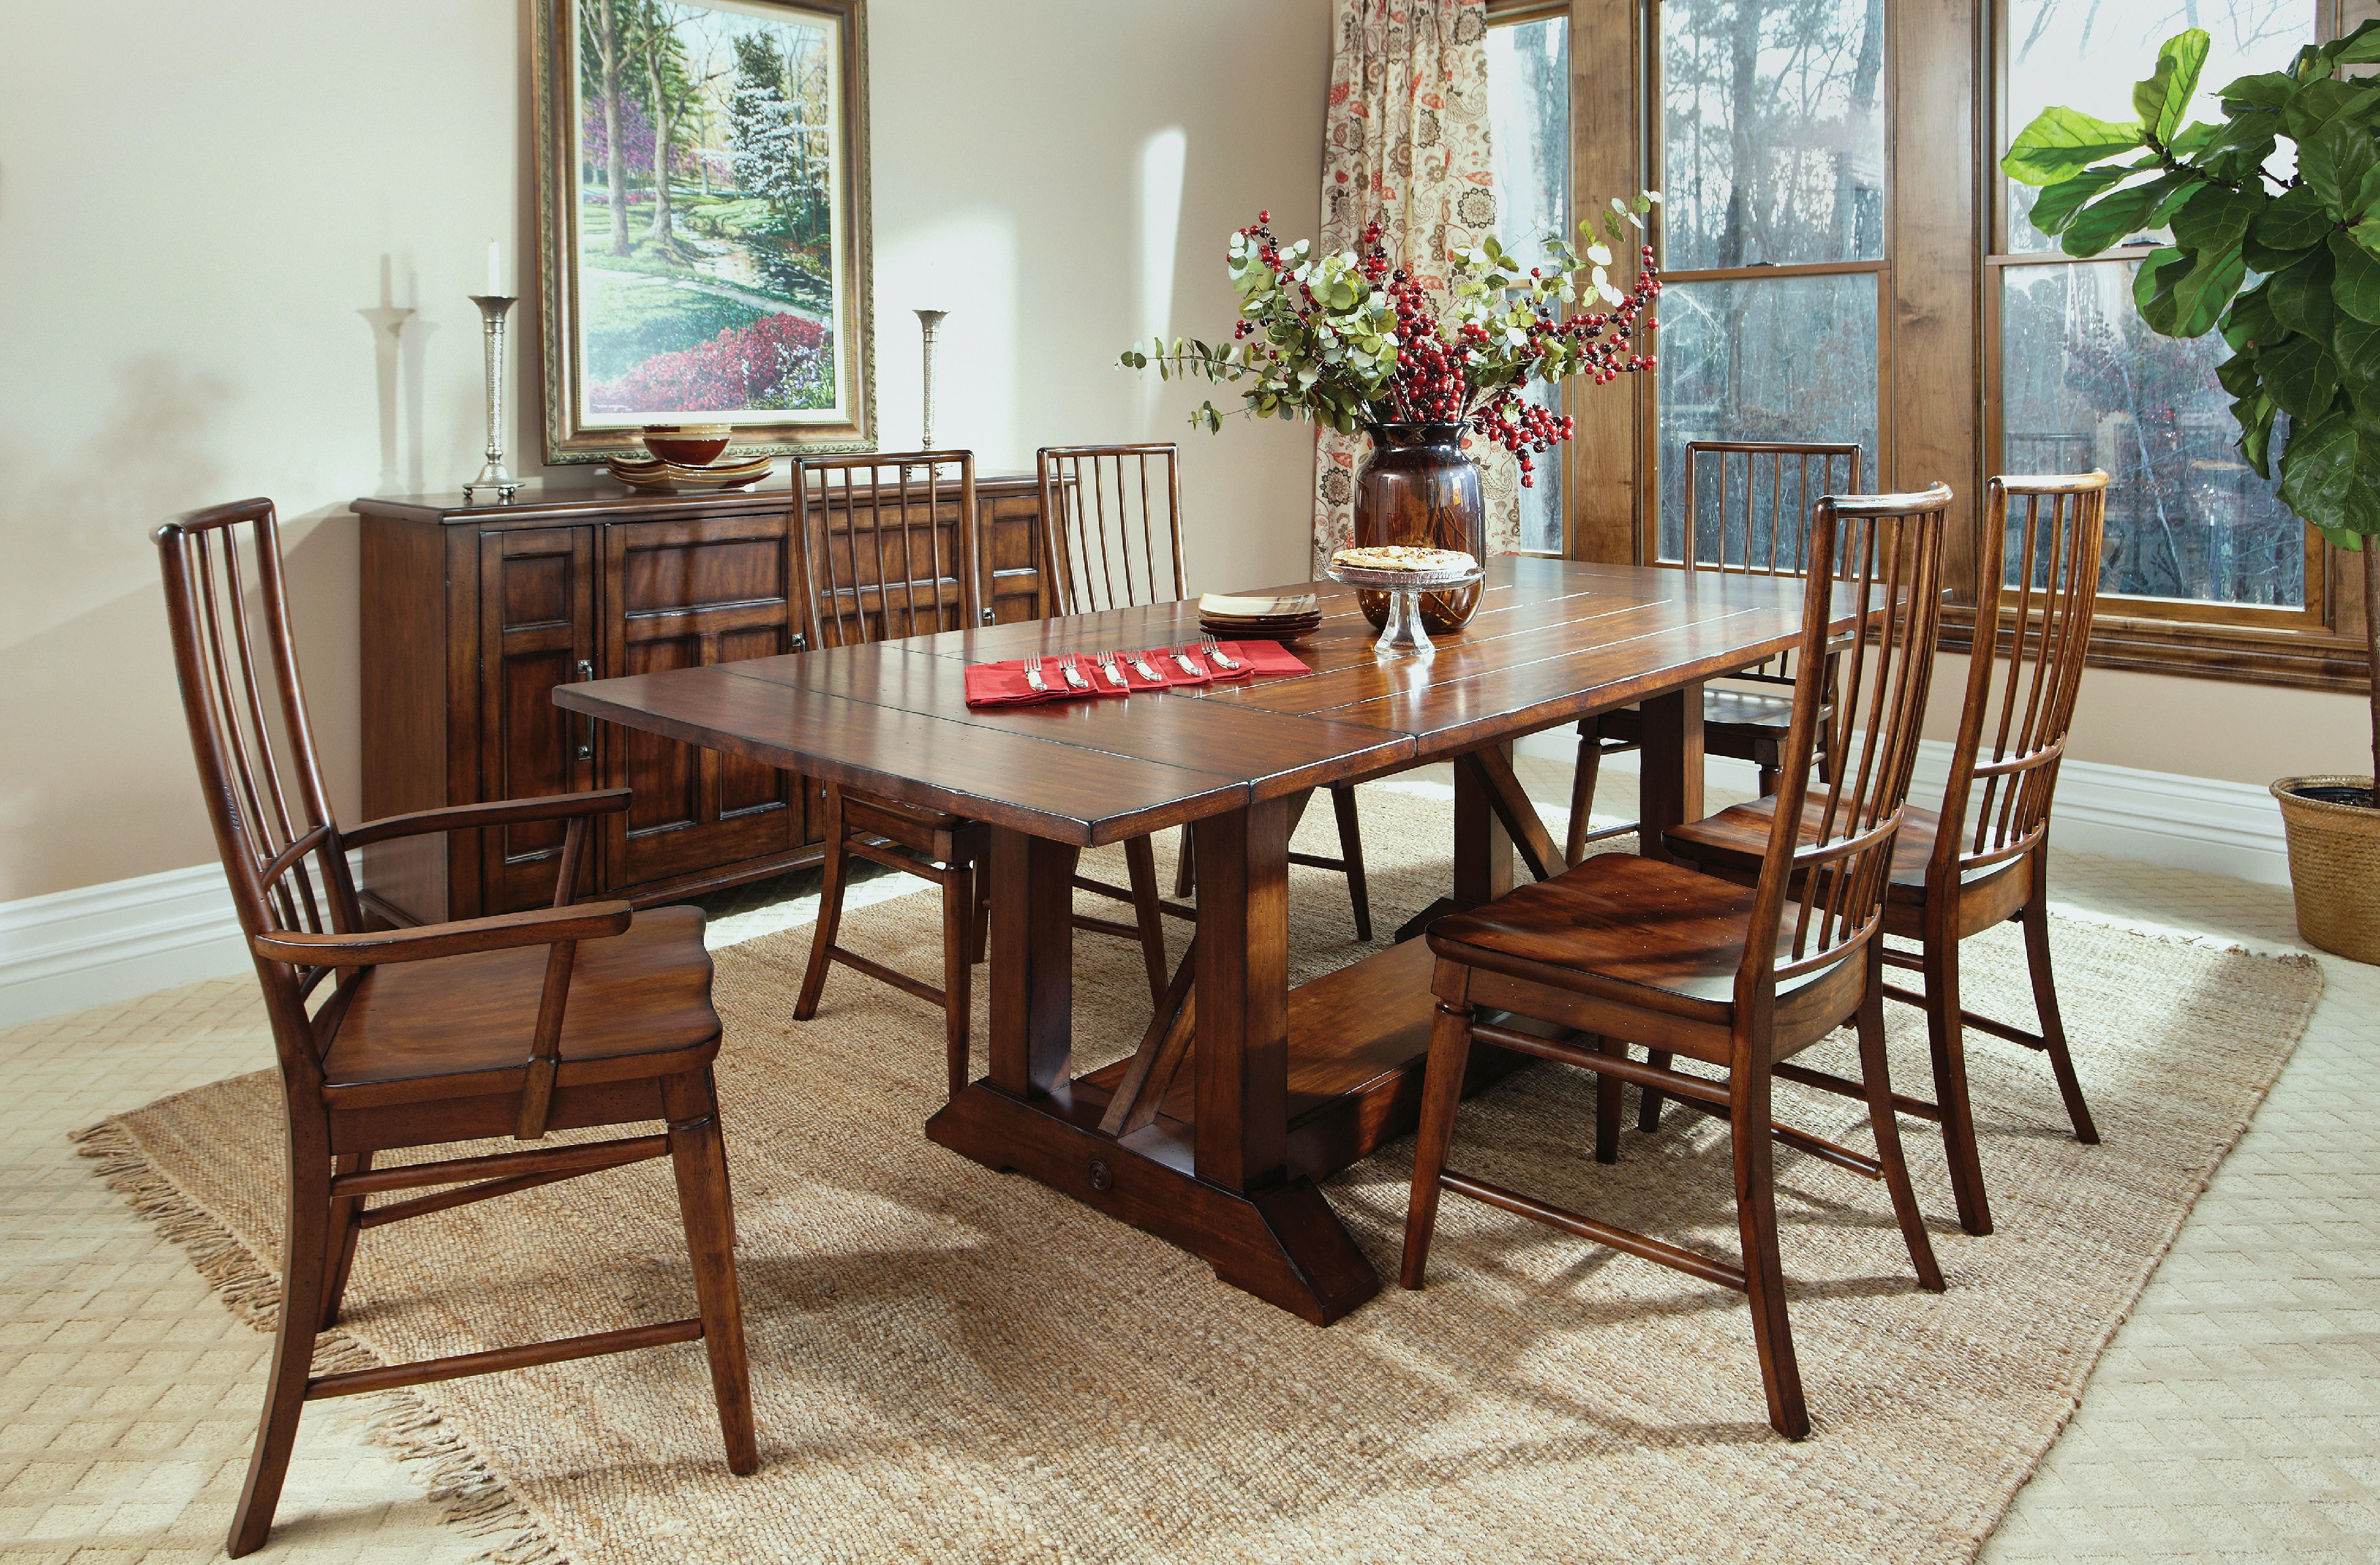 Carolina preserves dining room chair 426 900 drc outer banks furniture nags head and kitty - Carolina dining room ...